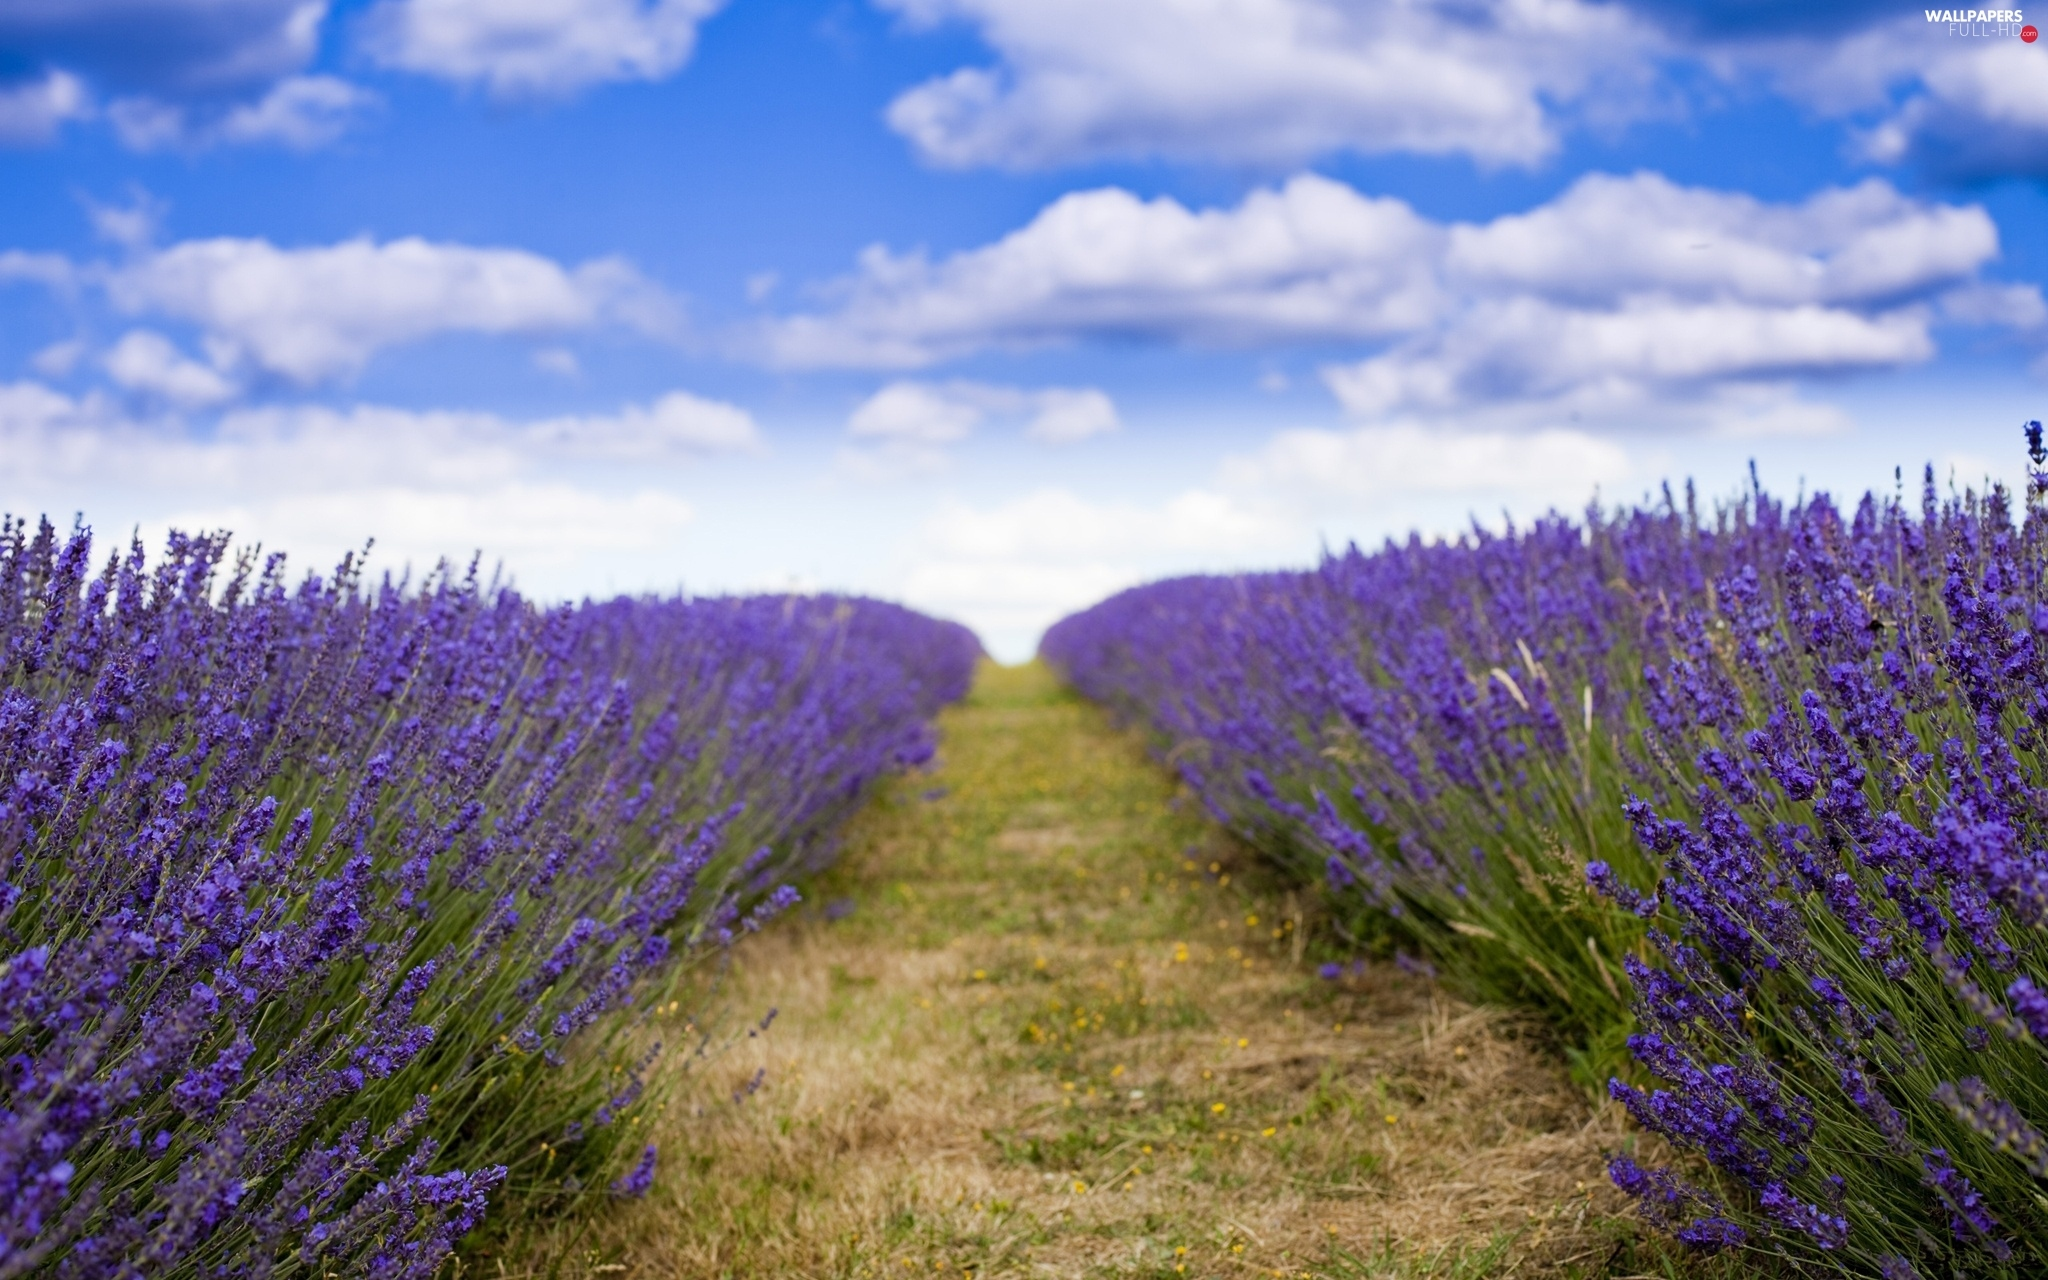 clouds, Sky, lavender, Field